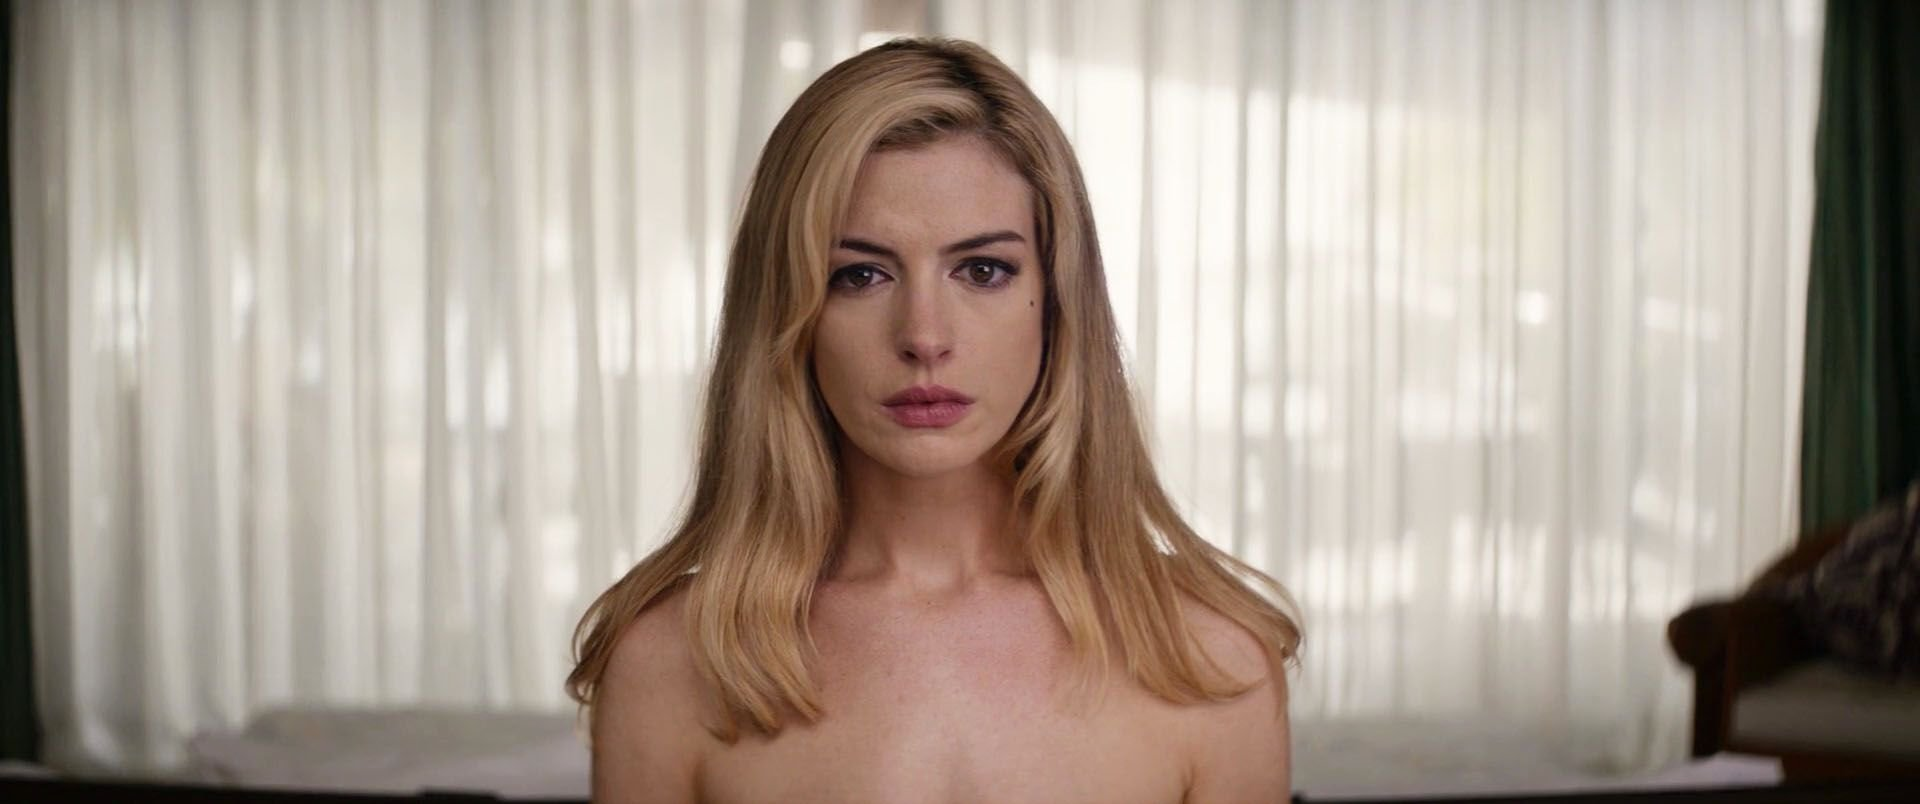 Anne Hathaway Nude Photos and Videos | #TheFappening